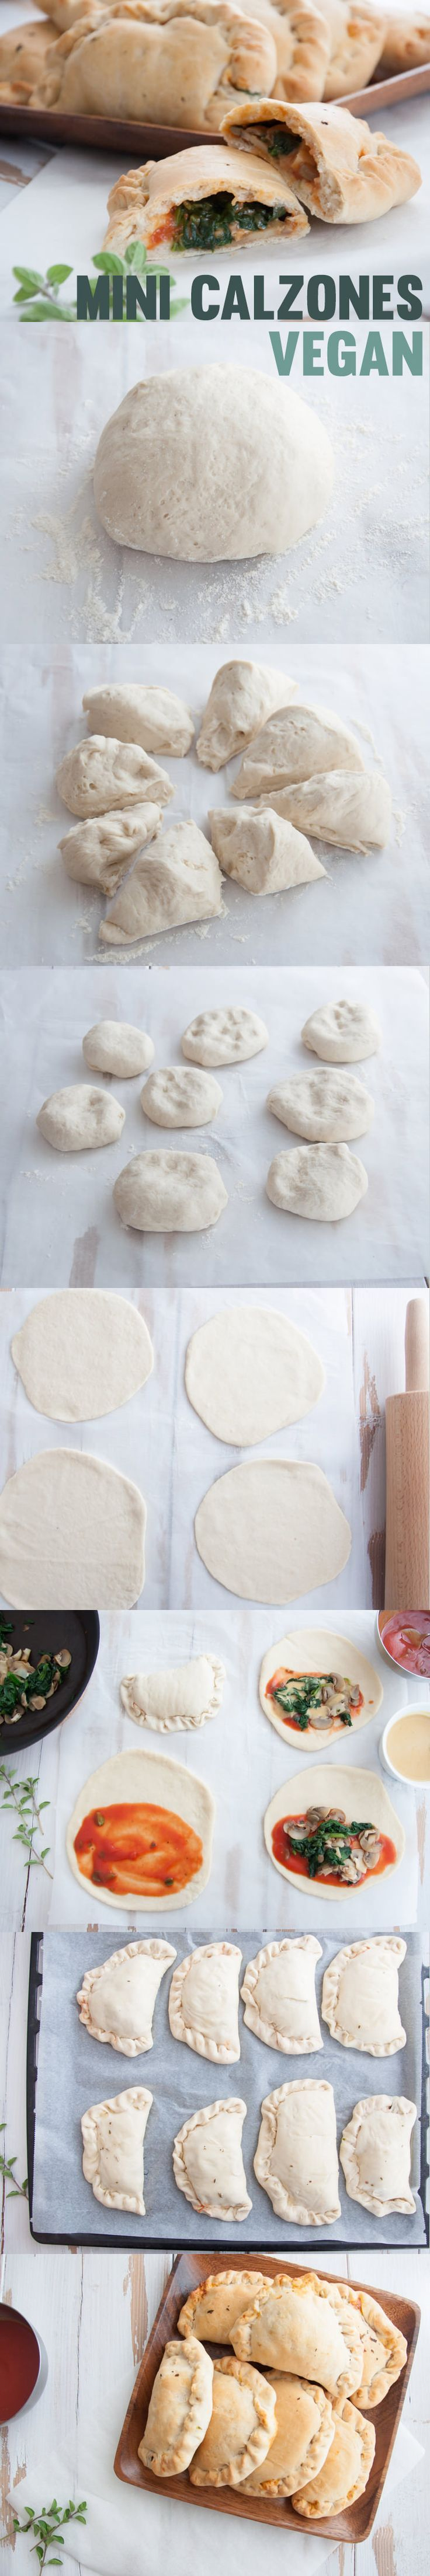 "Vegan Mini Calzones #vegan | ElephantasticVegan.com  (After pinning, I see recipe does not appear to be vegan, but ""vegetarian.""  Replace cheese to veganize."